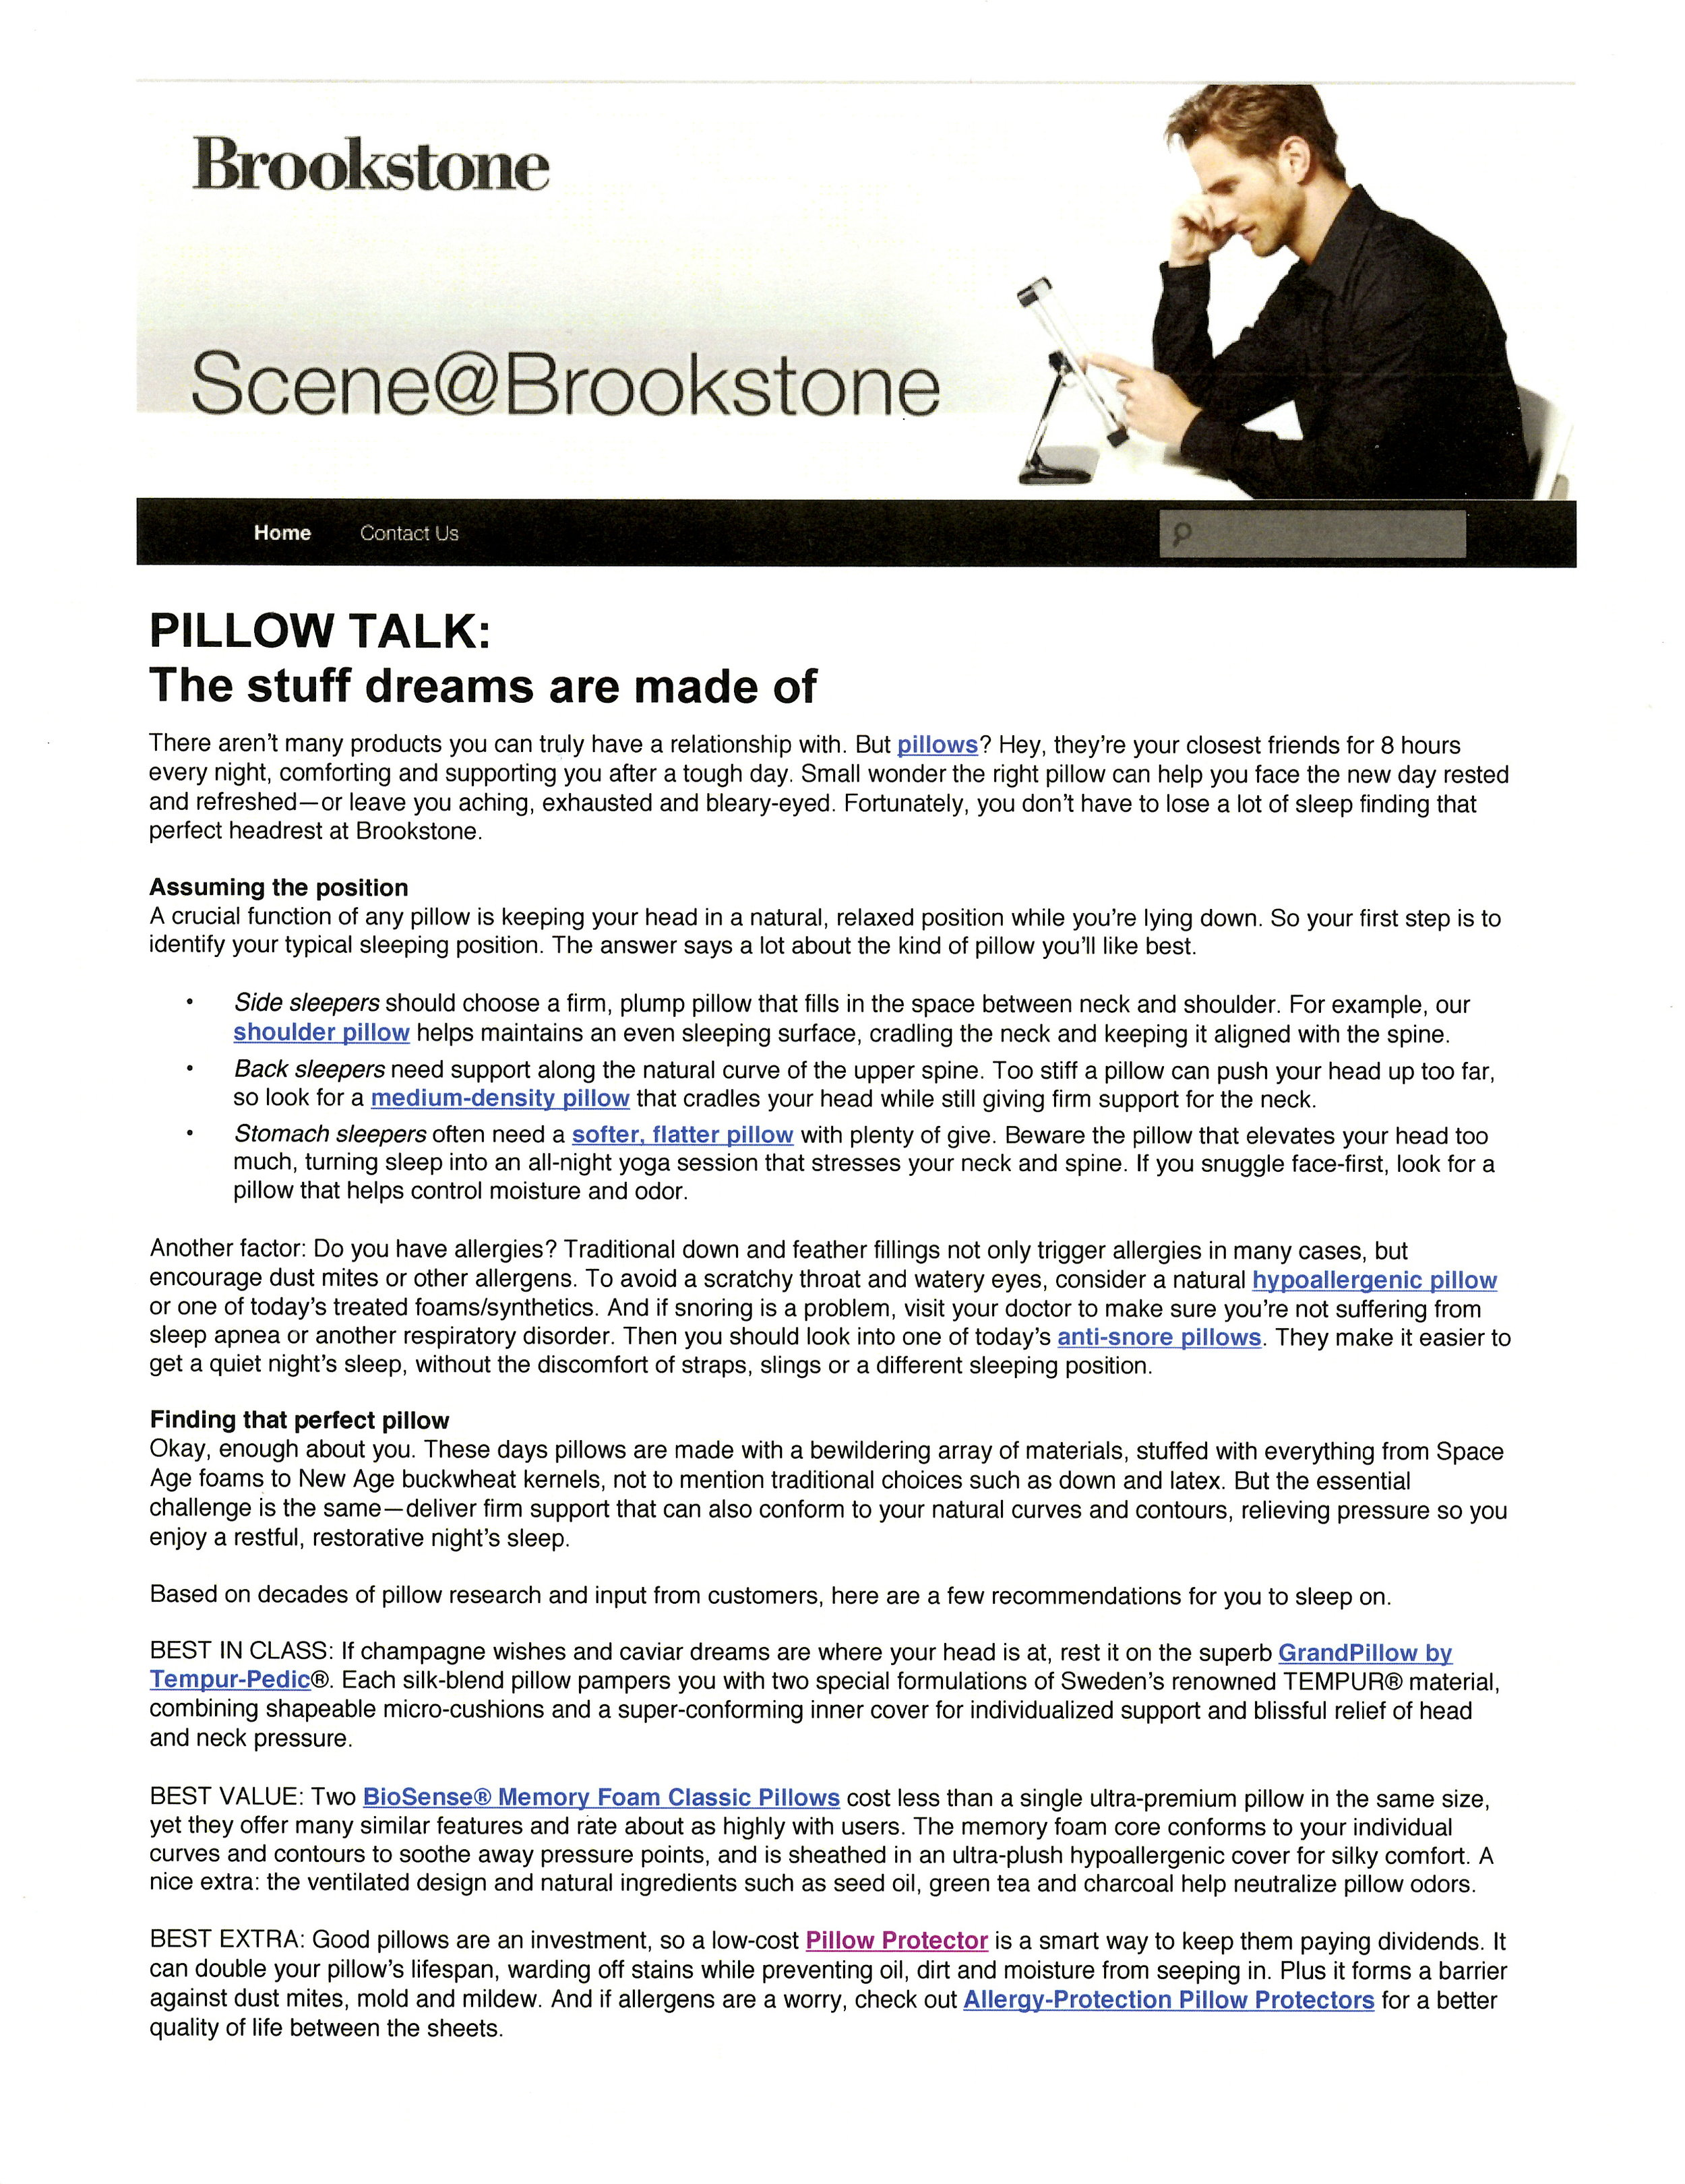 Brookstone Corp. - Blog Entry